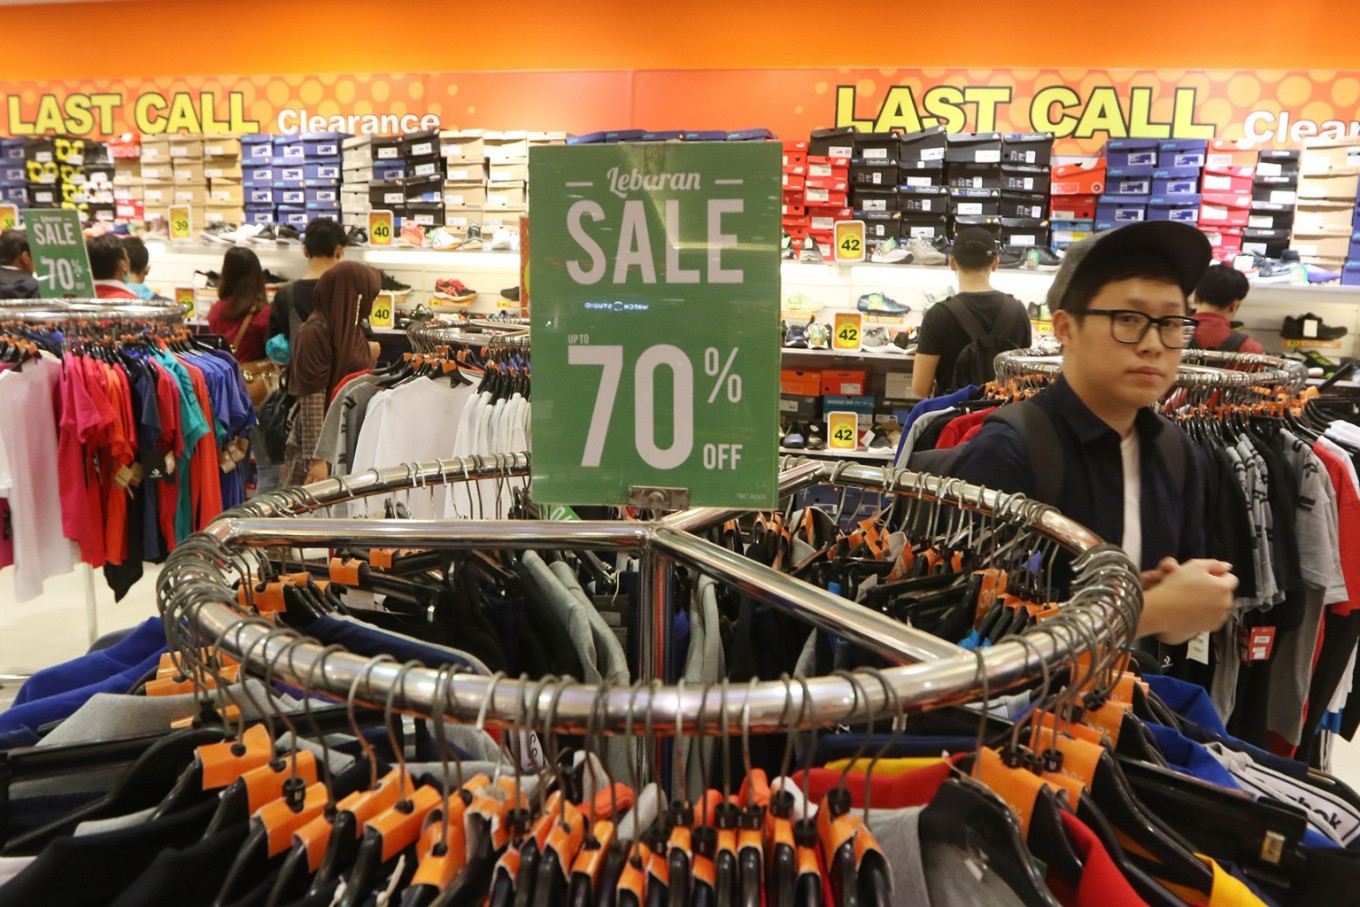 It's time to shop, first nationwide great sale to begin next week